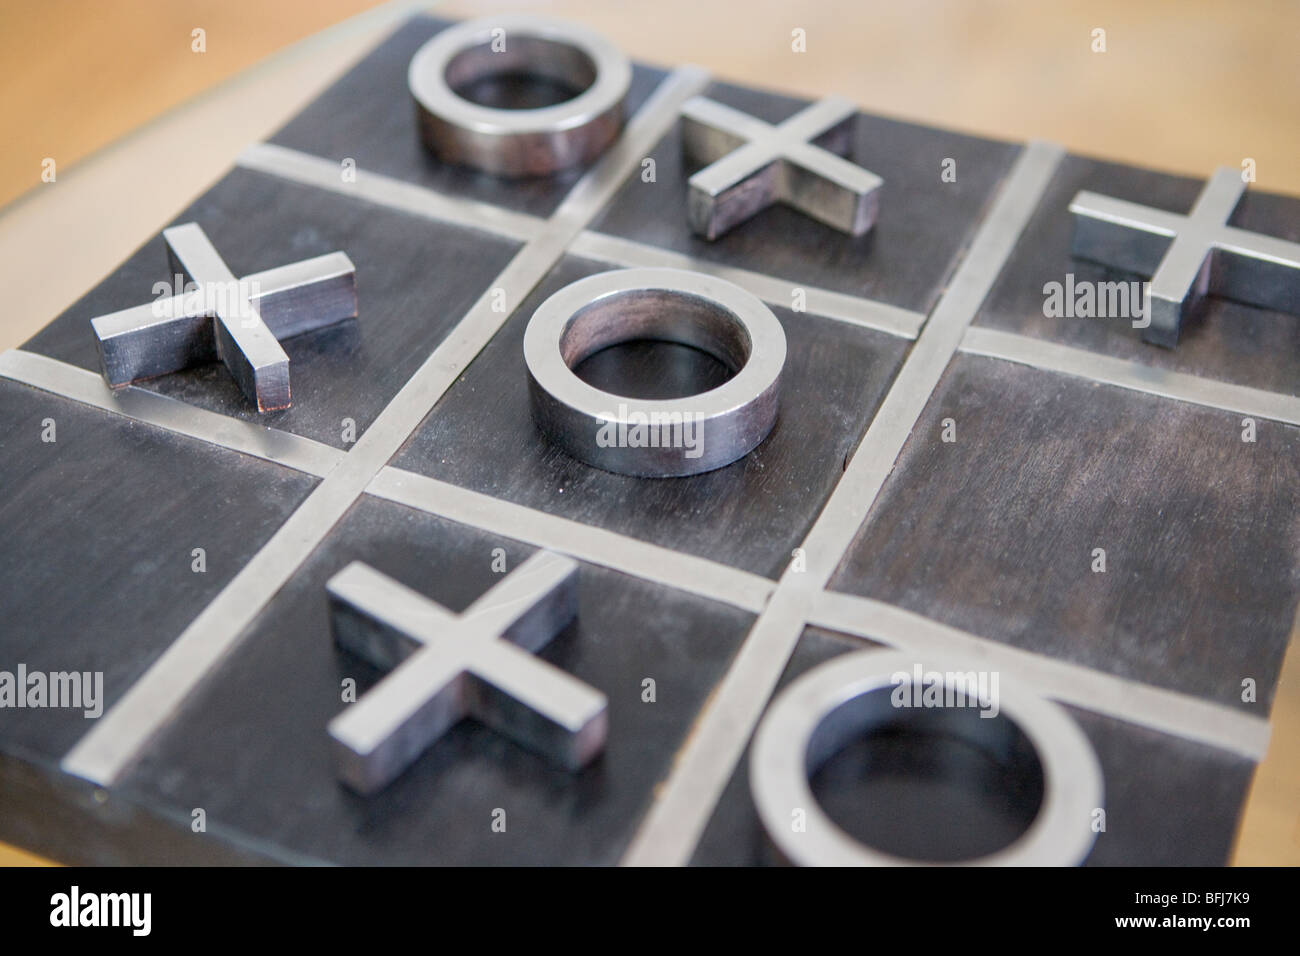 Parlour game, close-up, Sweden. - Stock Image